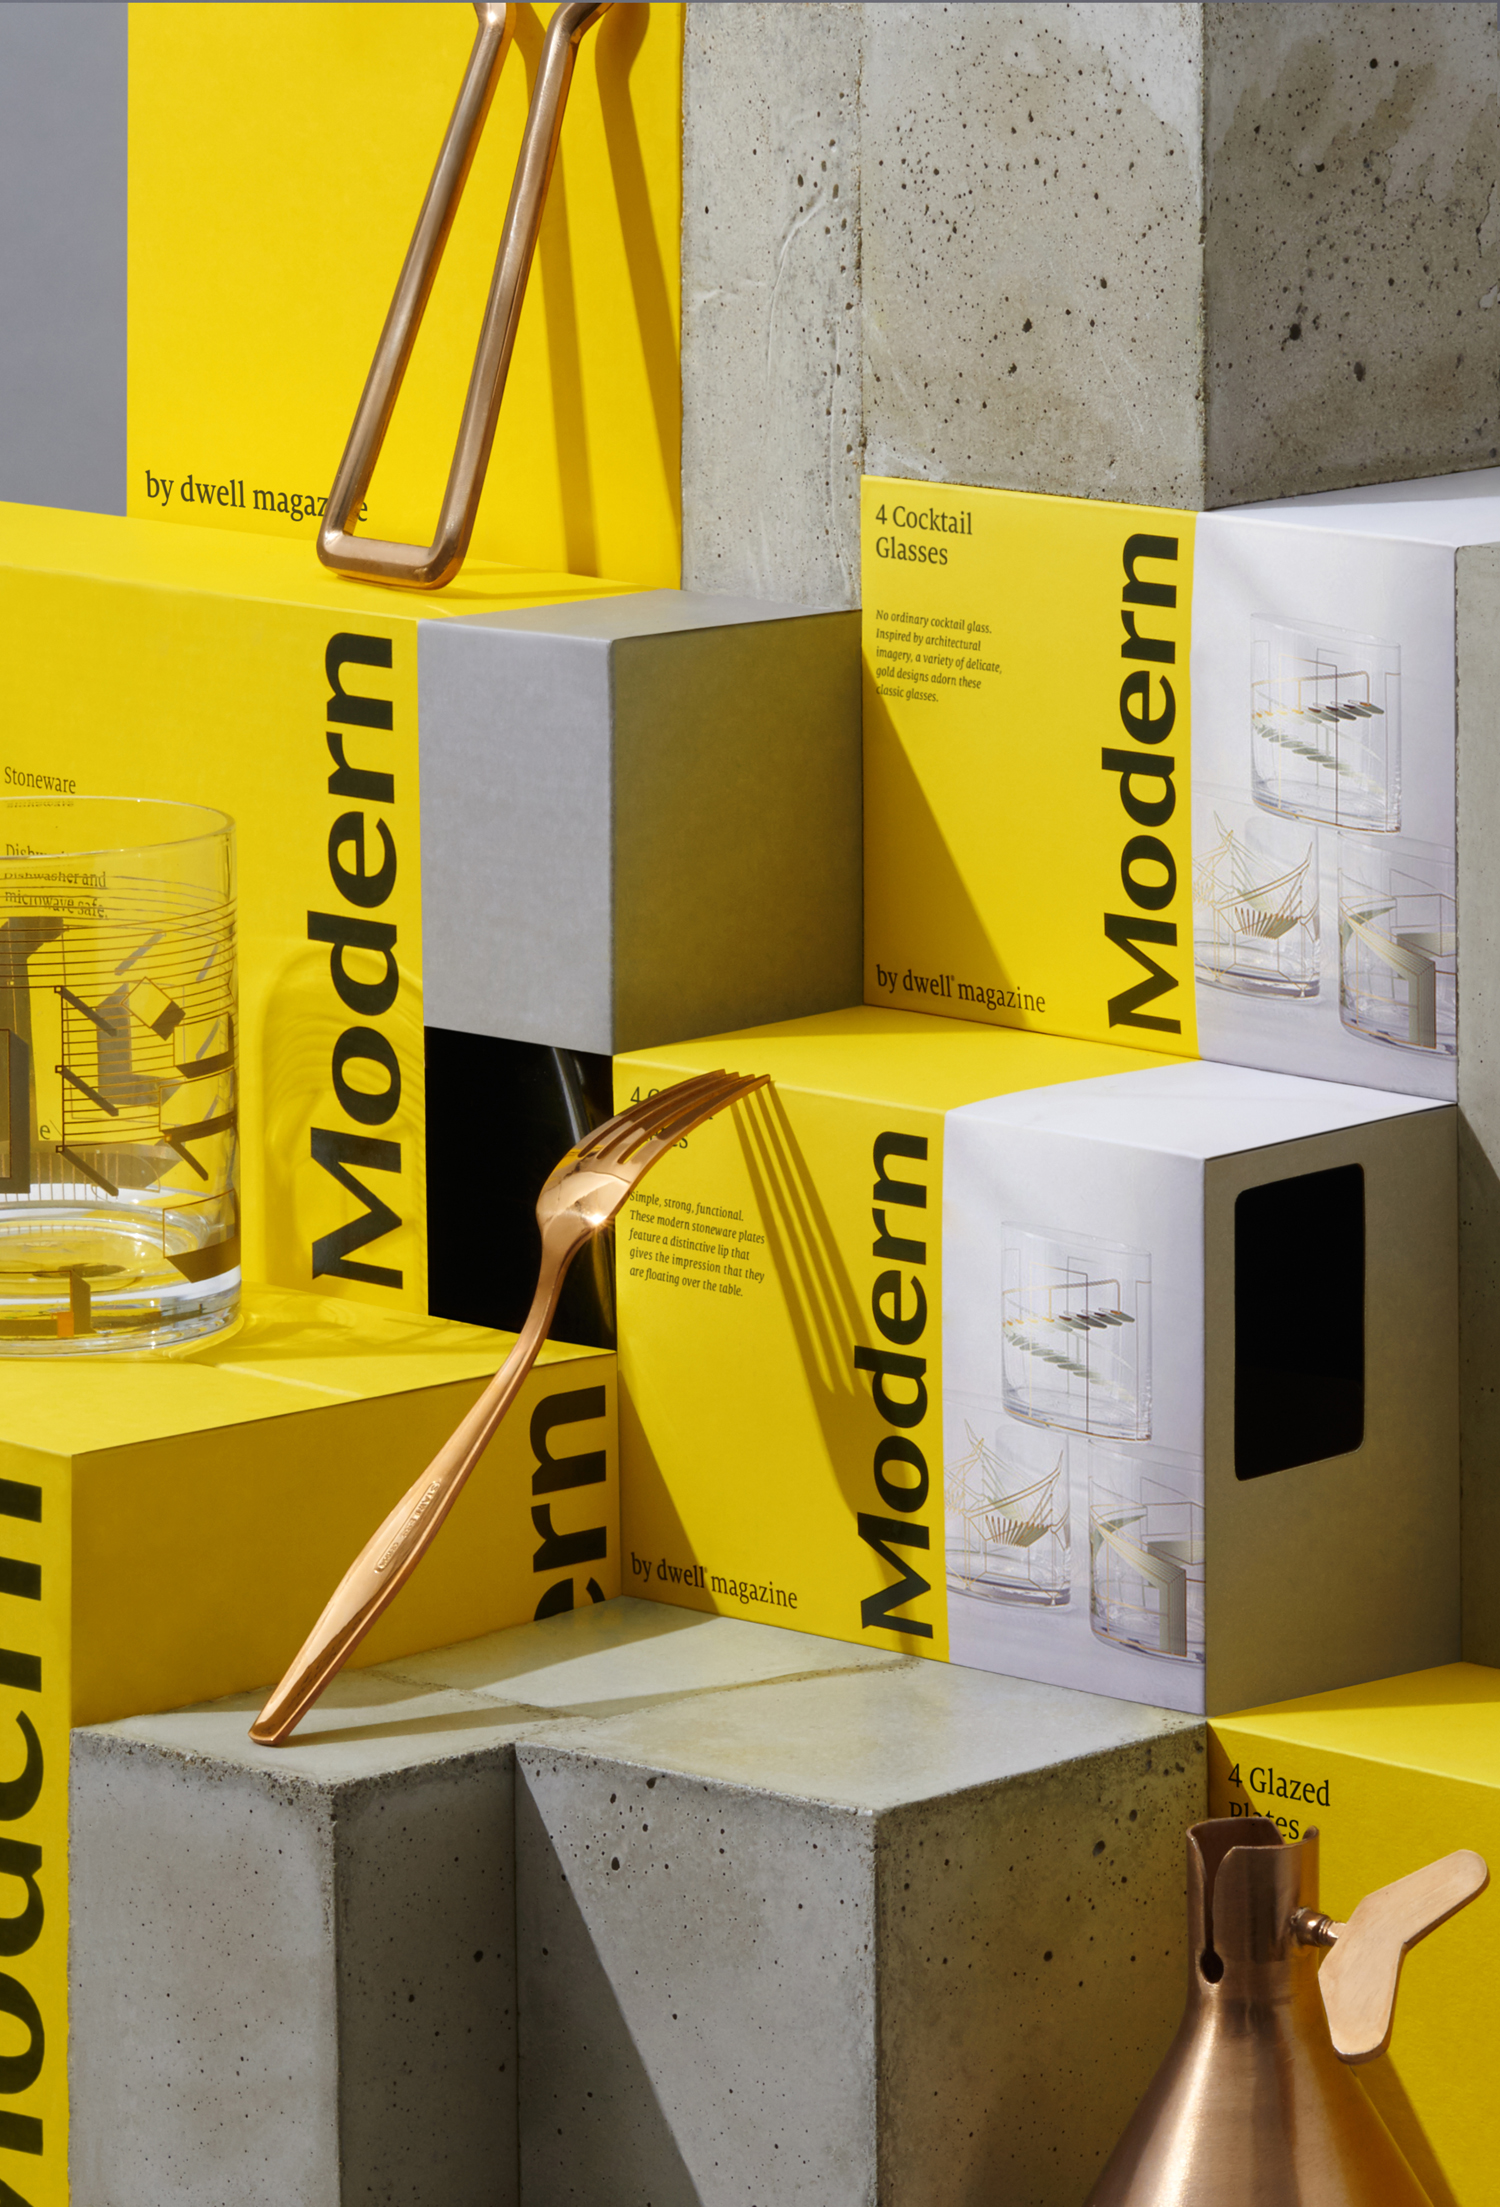 Branding and packaging by NY studio Collins for product and furniture range Modern by Dwell Magazine, a collaboration with Target.